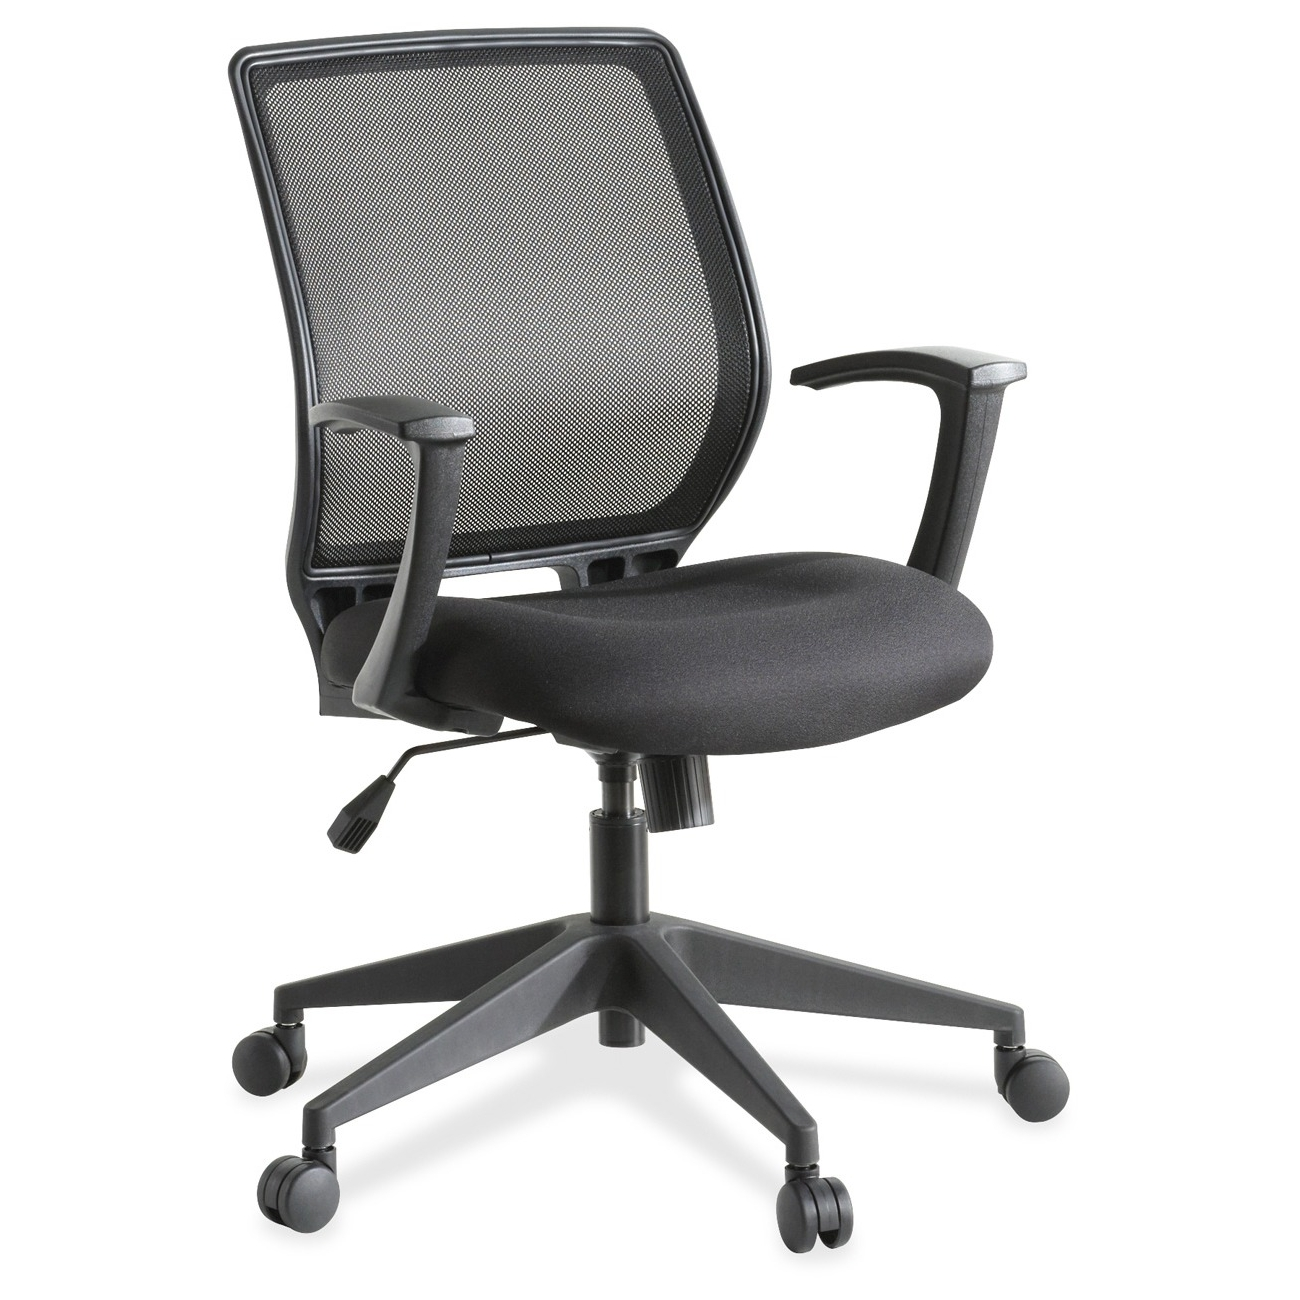 Lorell Executive Mesh Back Work Chair Buy Rite Business